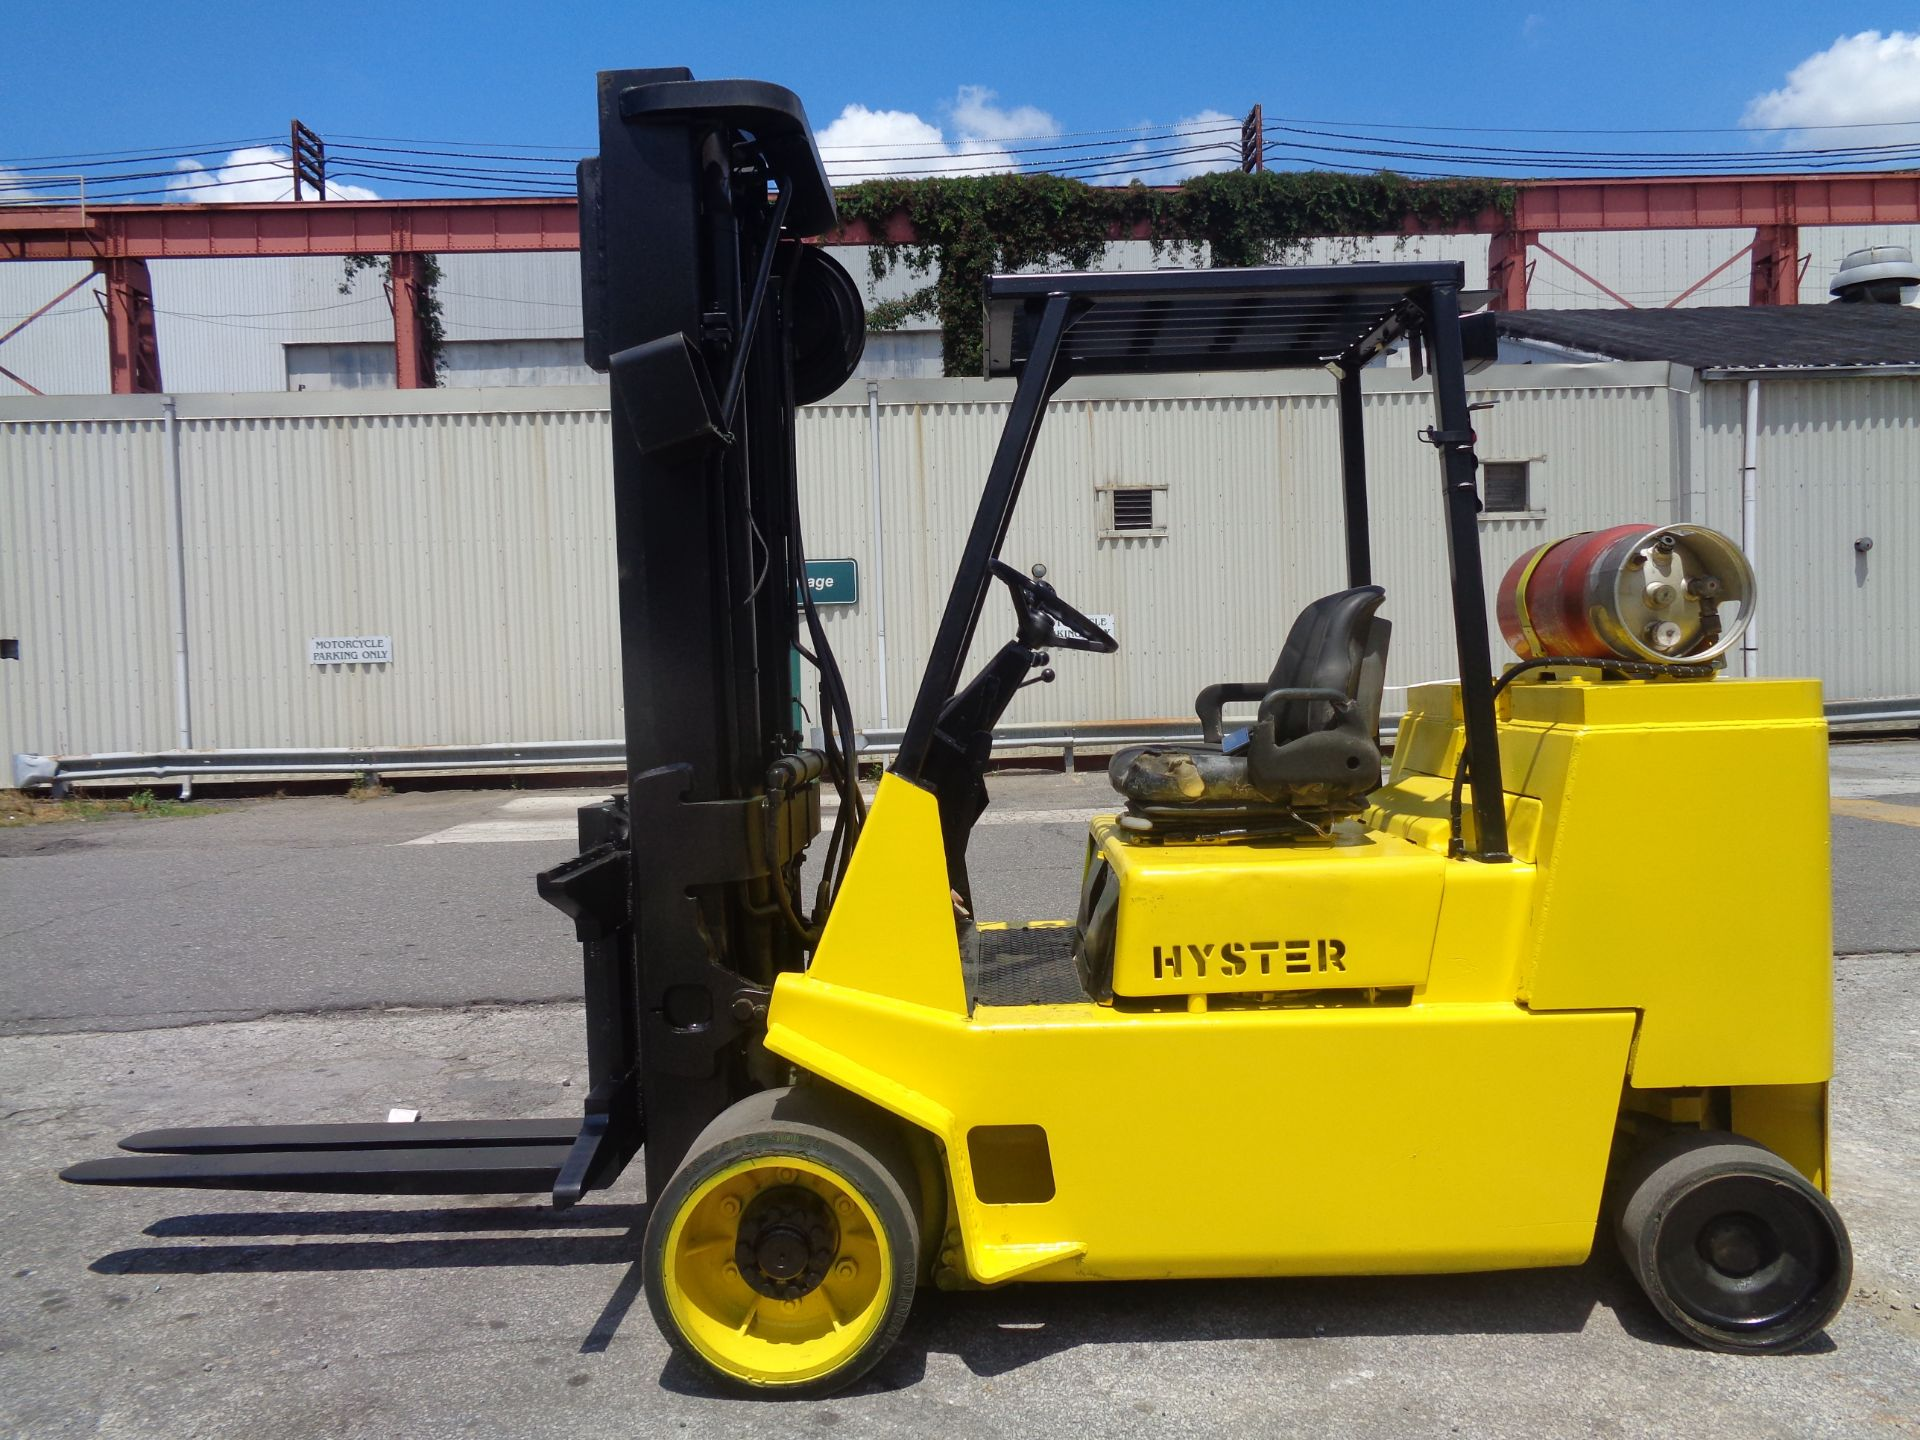 Hyster S120XL 12,000lb Forklift - Image 2 of 14